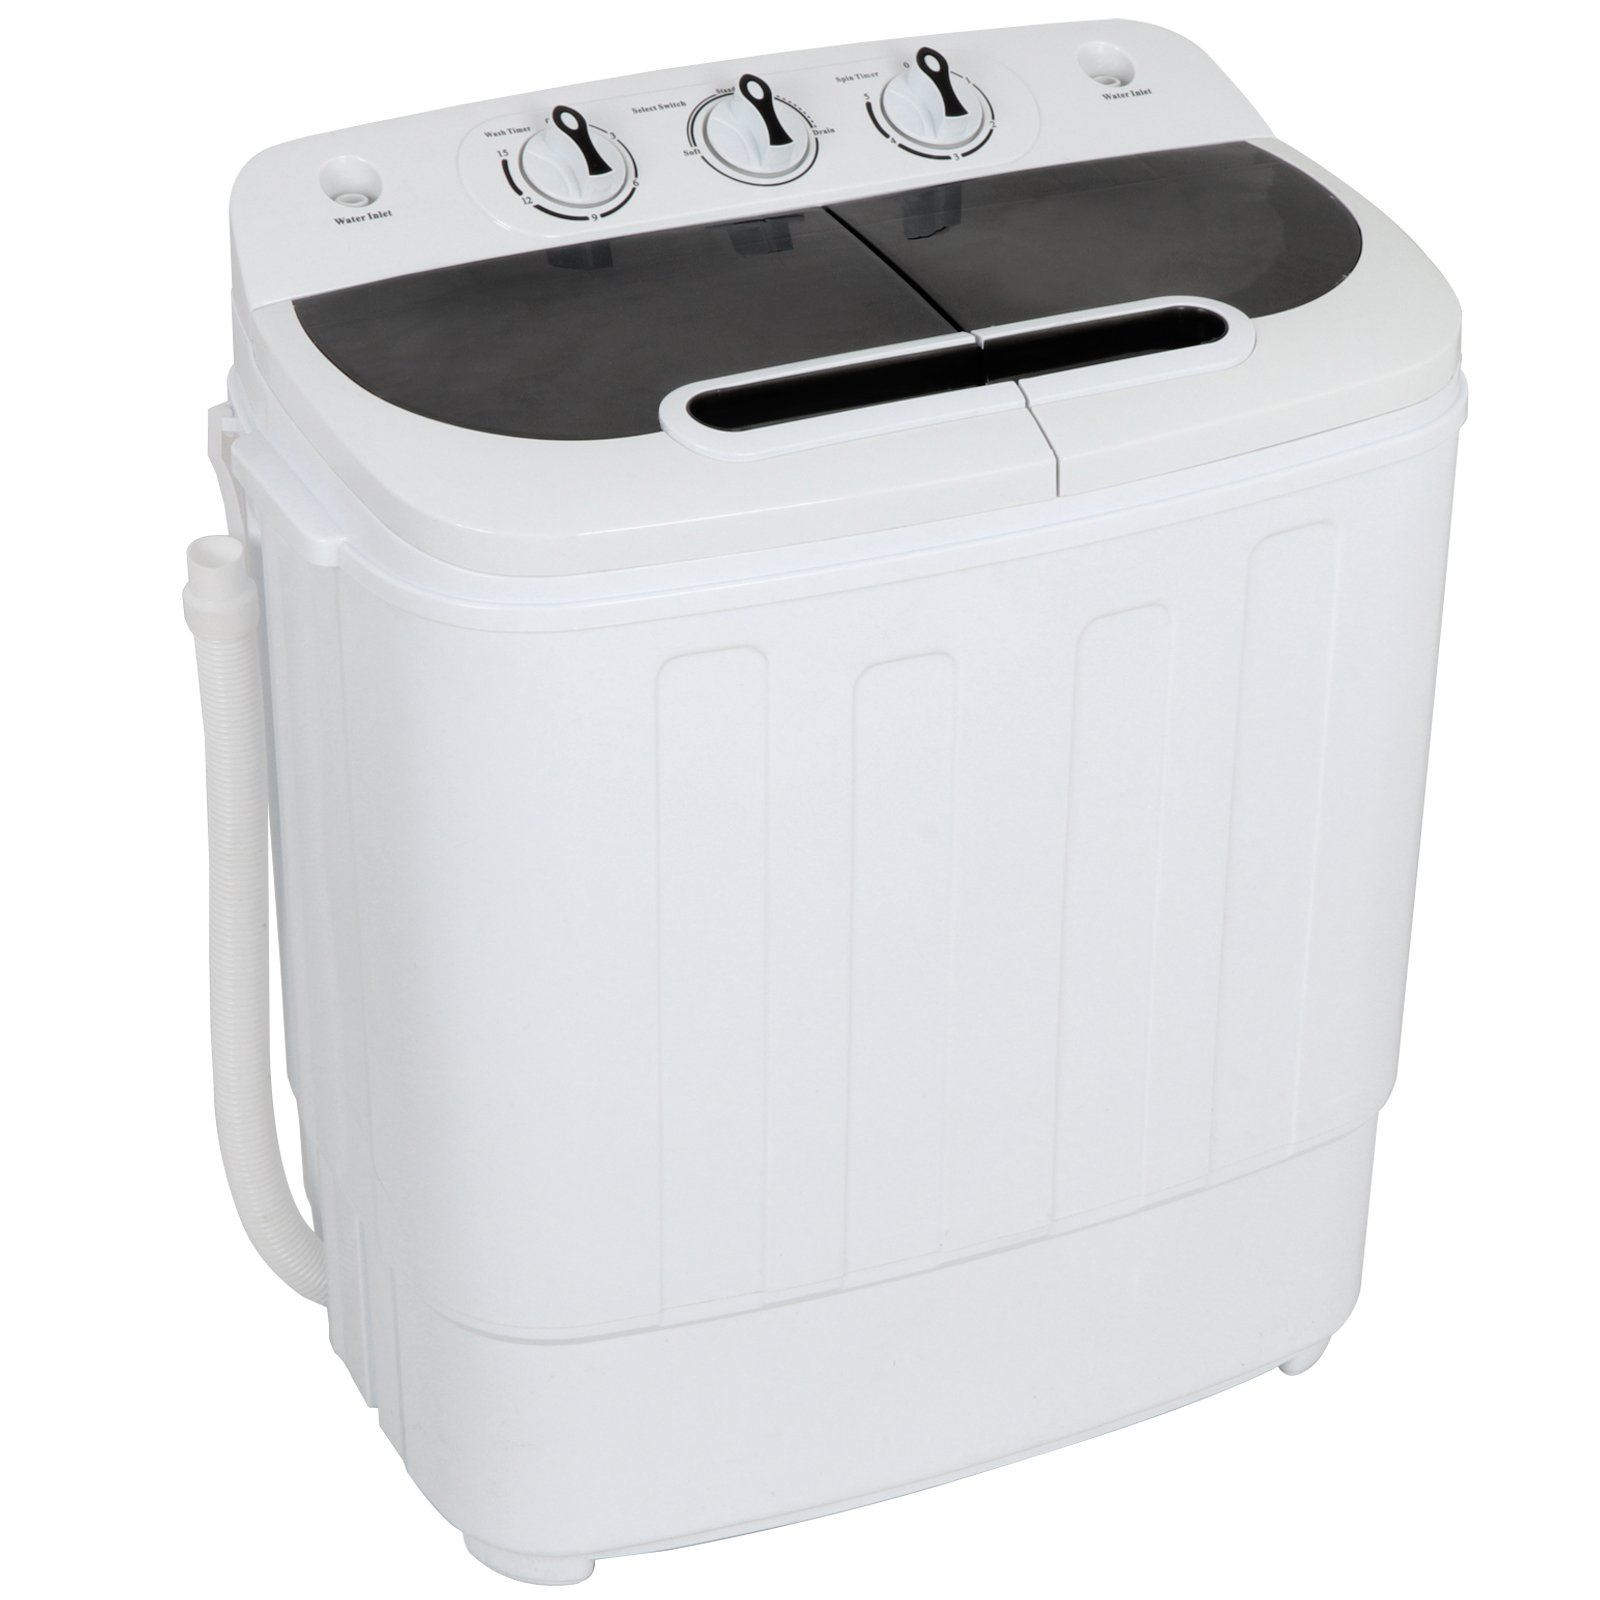 ZENY 2in1 Compact Mini Twin Tub Washing Machine w/Spin Cycle Dryer, 13Lbs Capacity w/Hose, Space/Time/Energy Saving